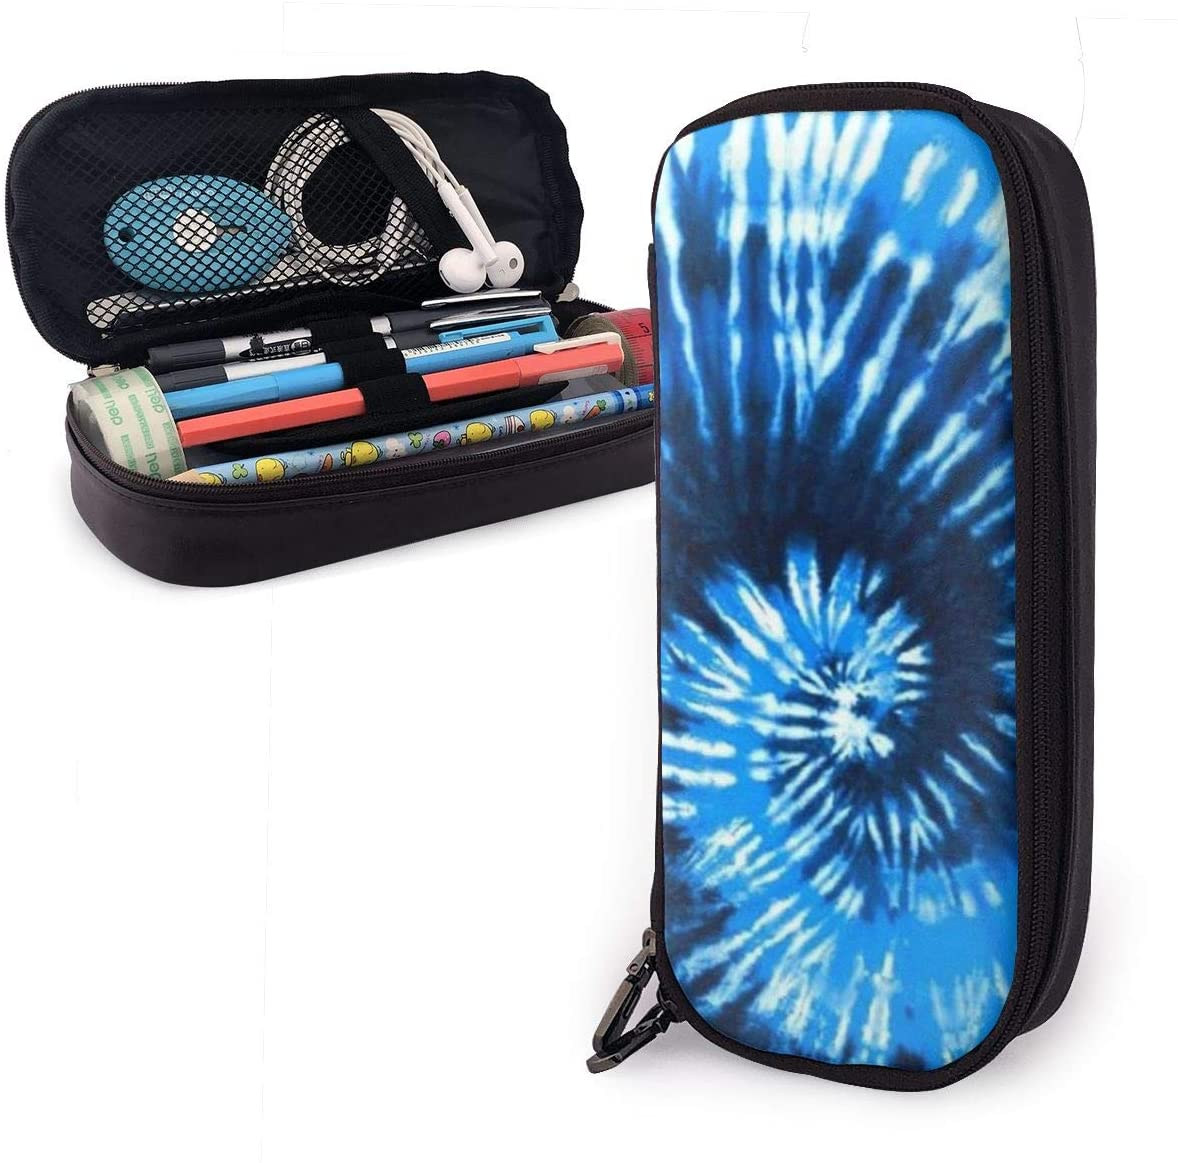 NiYoung Blue Tie Dye Pencil Bag Pen Case, Students Stationery Pouch Zipper Pencil Pouch Bag for Pens, Pencils Drawing Painting Kids - Big Capacity Makeup Bag